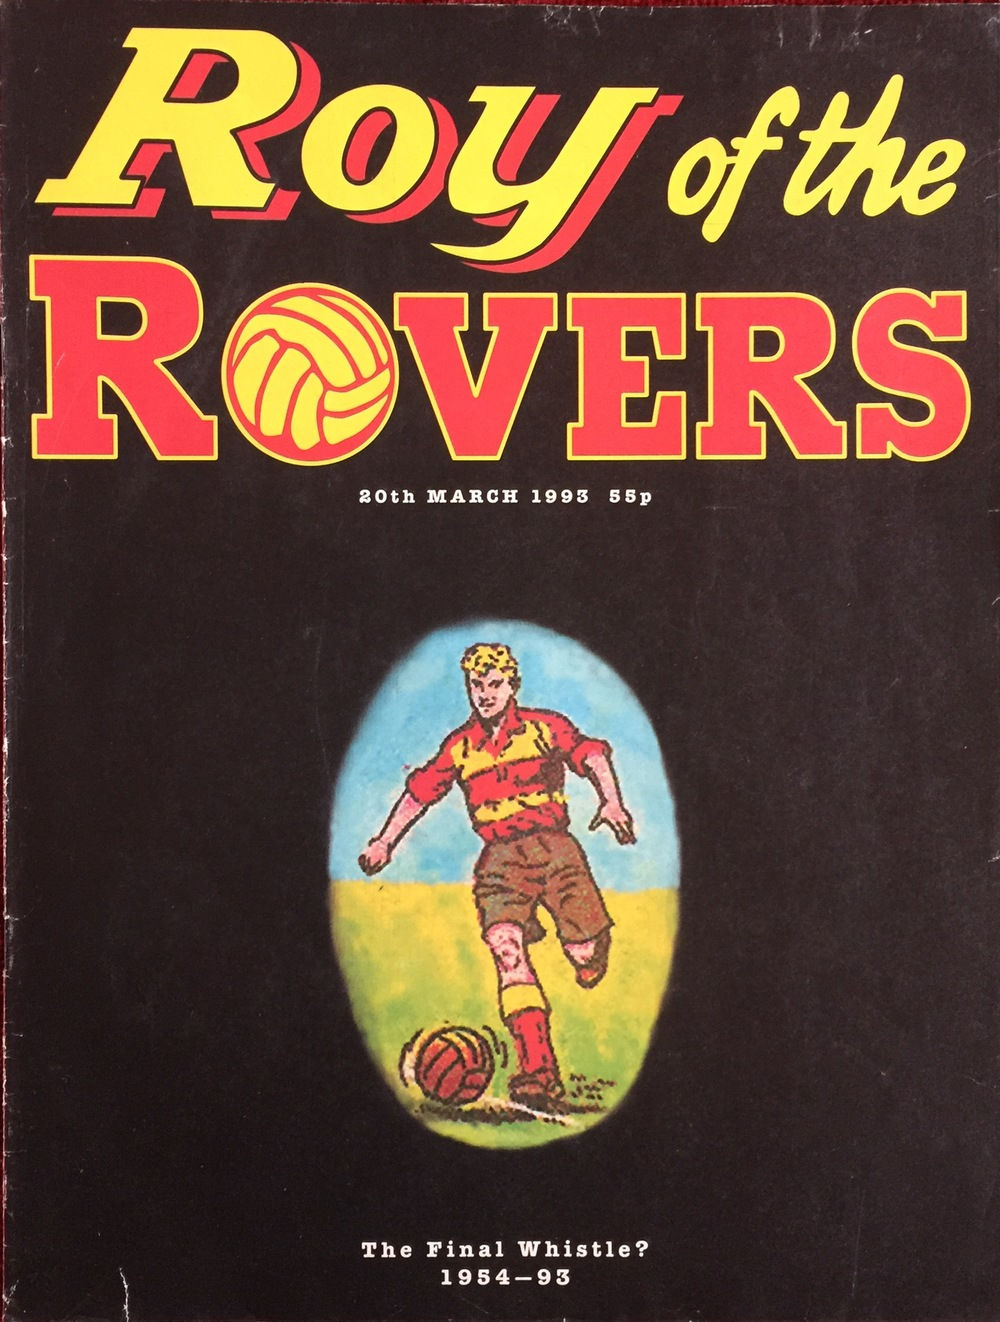 Cover artwork: Joe Colquhoun